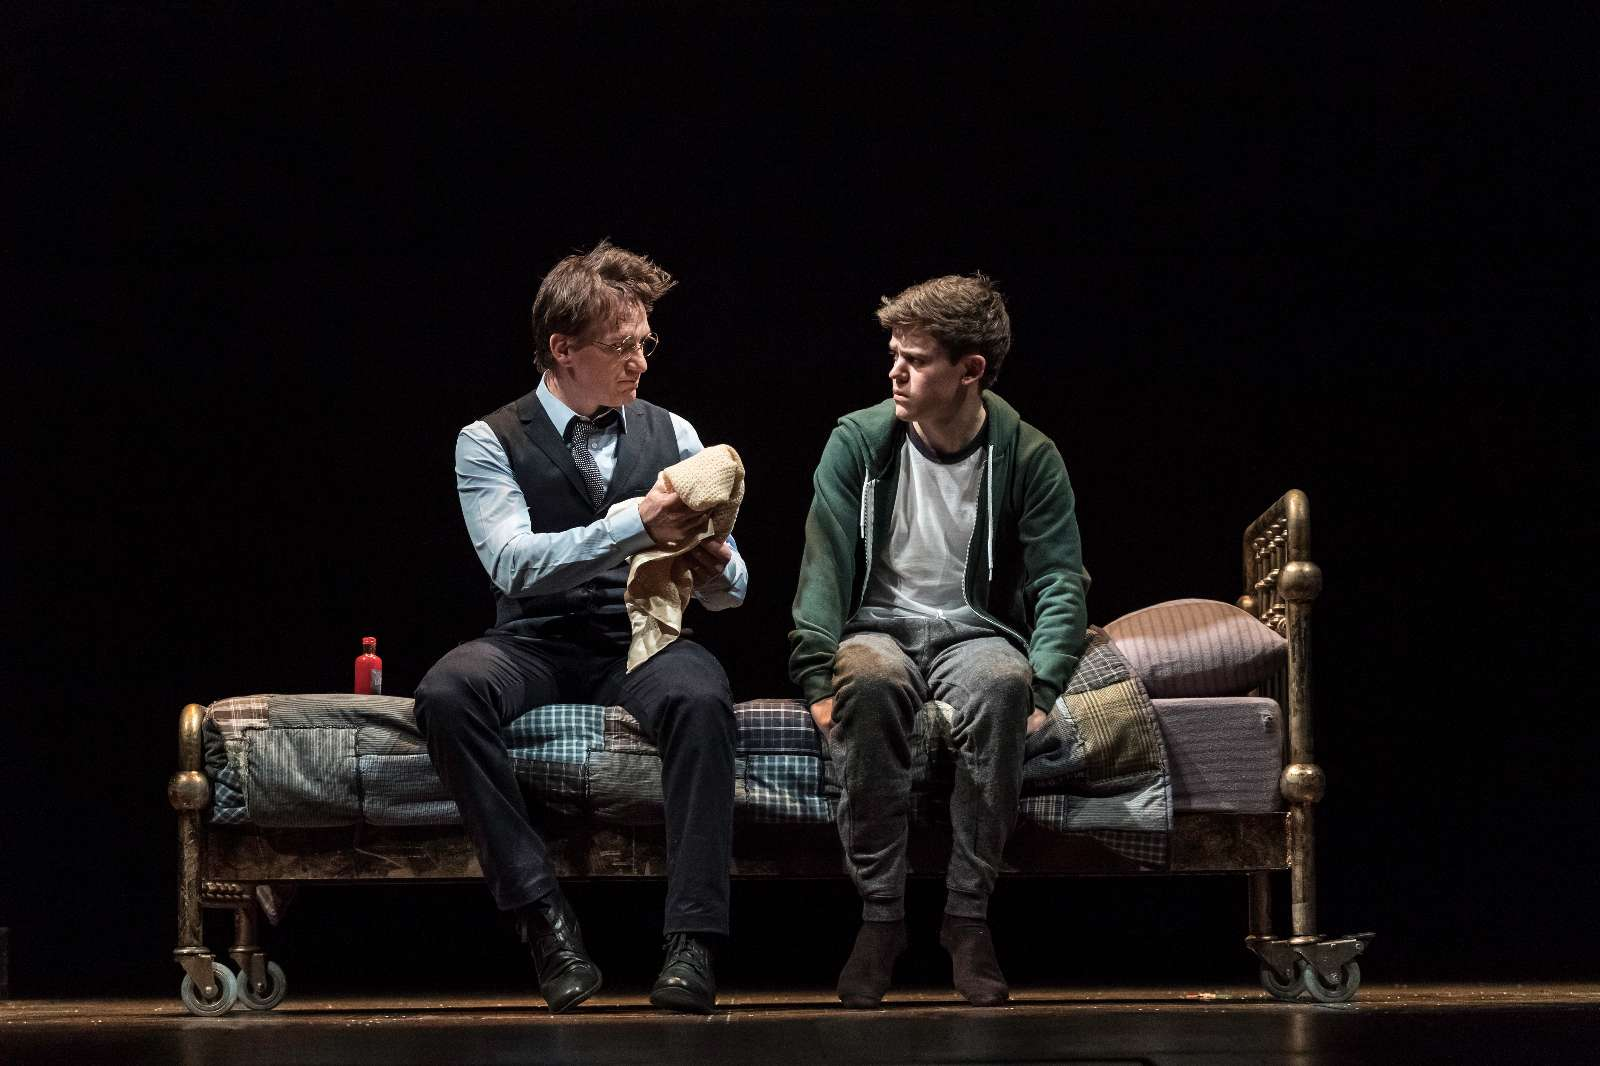 L-R Jamie Parker (Harry Potter) and Sam Clemmett (Albus Potter); Photo by Manuel Harlan - http://www.harrypottertheplay.com/